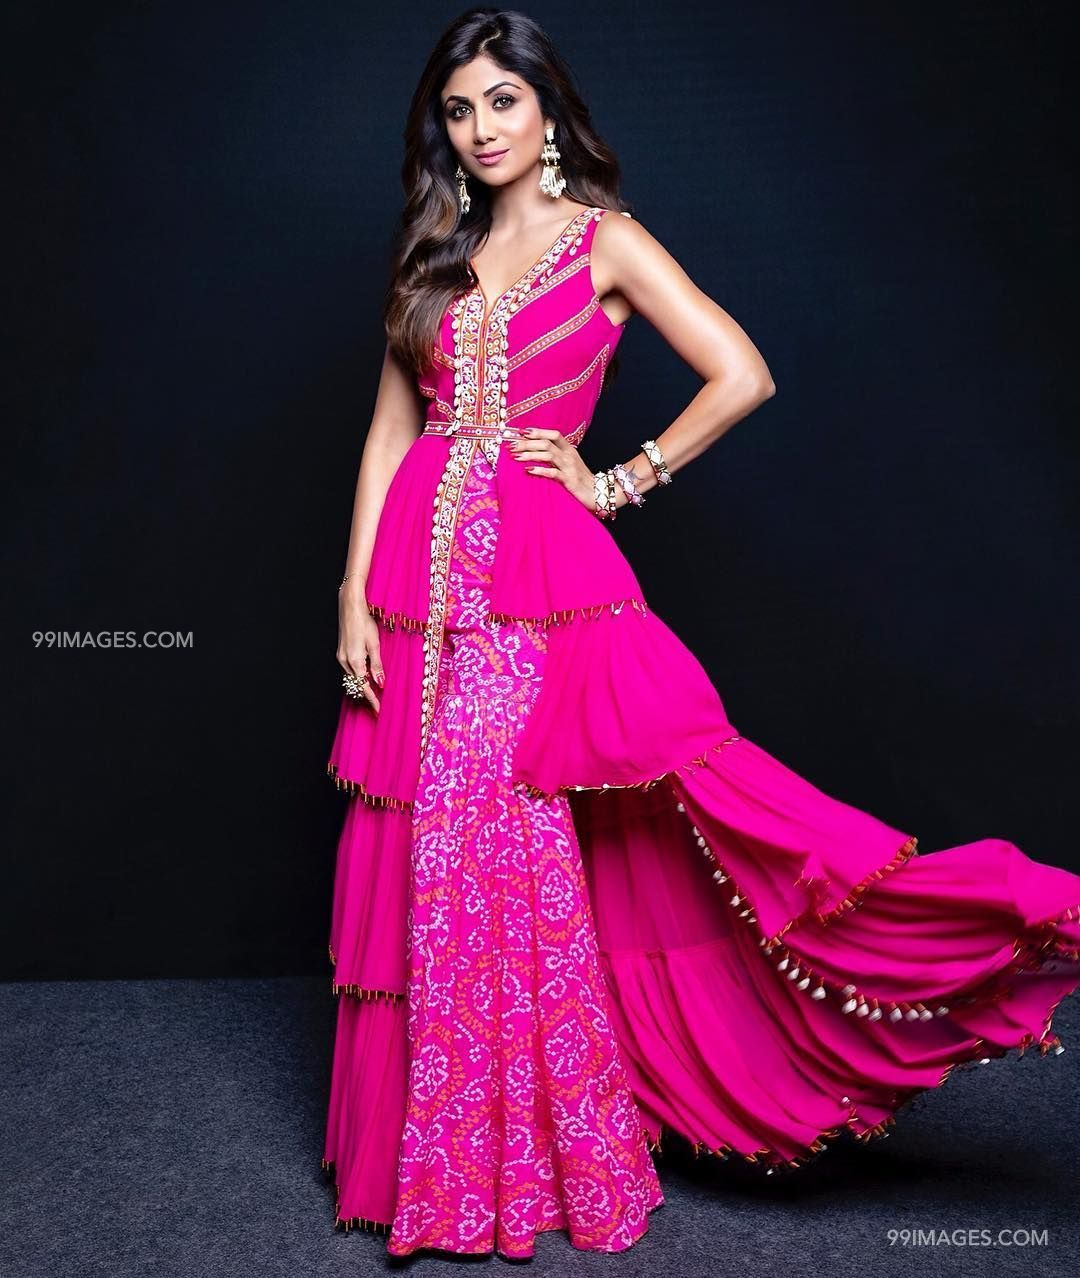 60 Shilpa Shetty Hot Hd Photos  Wallpapers For Mobile 1080P 2019-7731